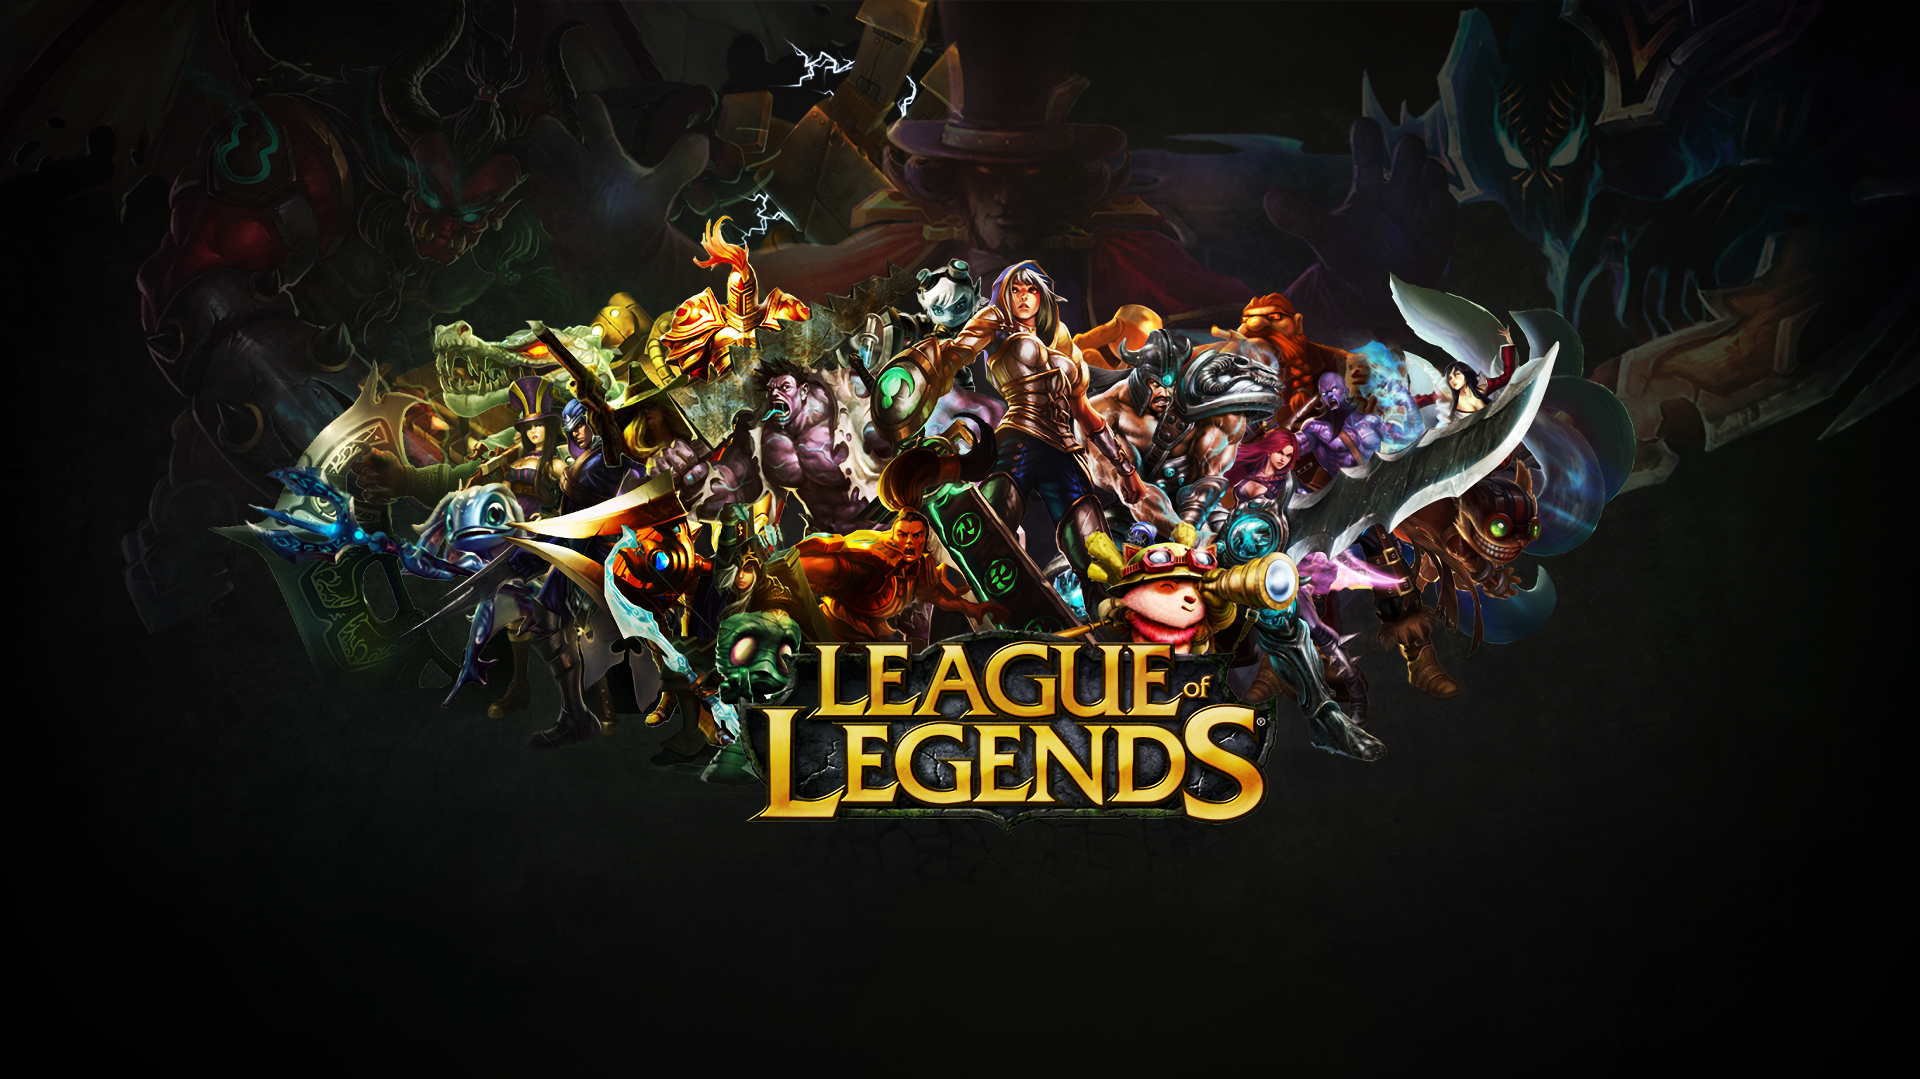 1980x1080 league of legends